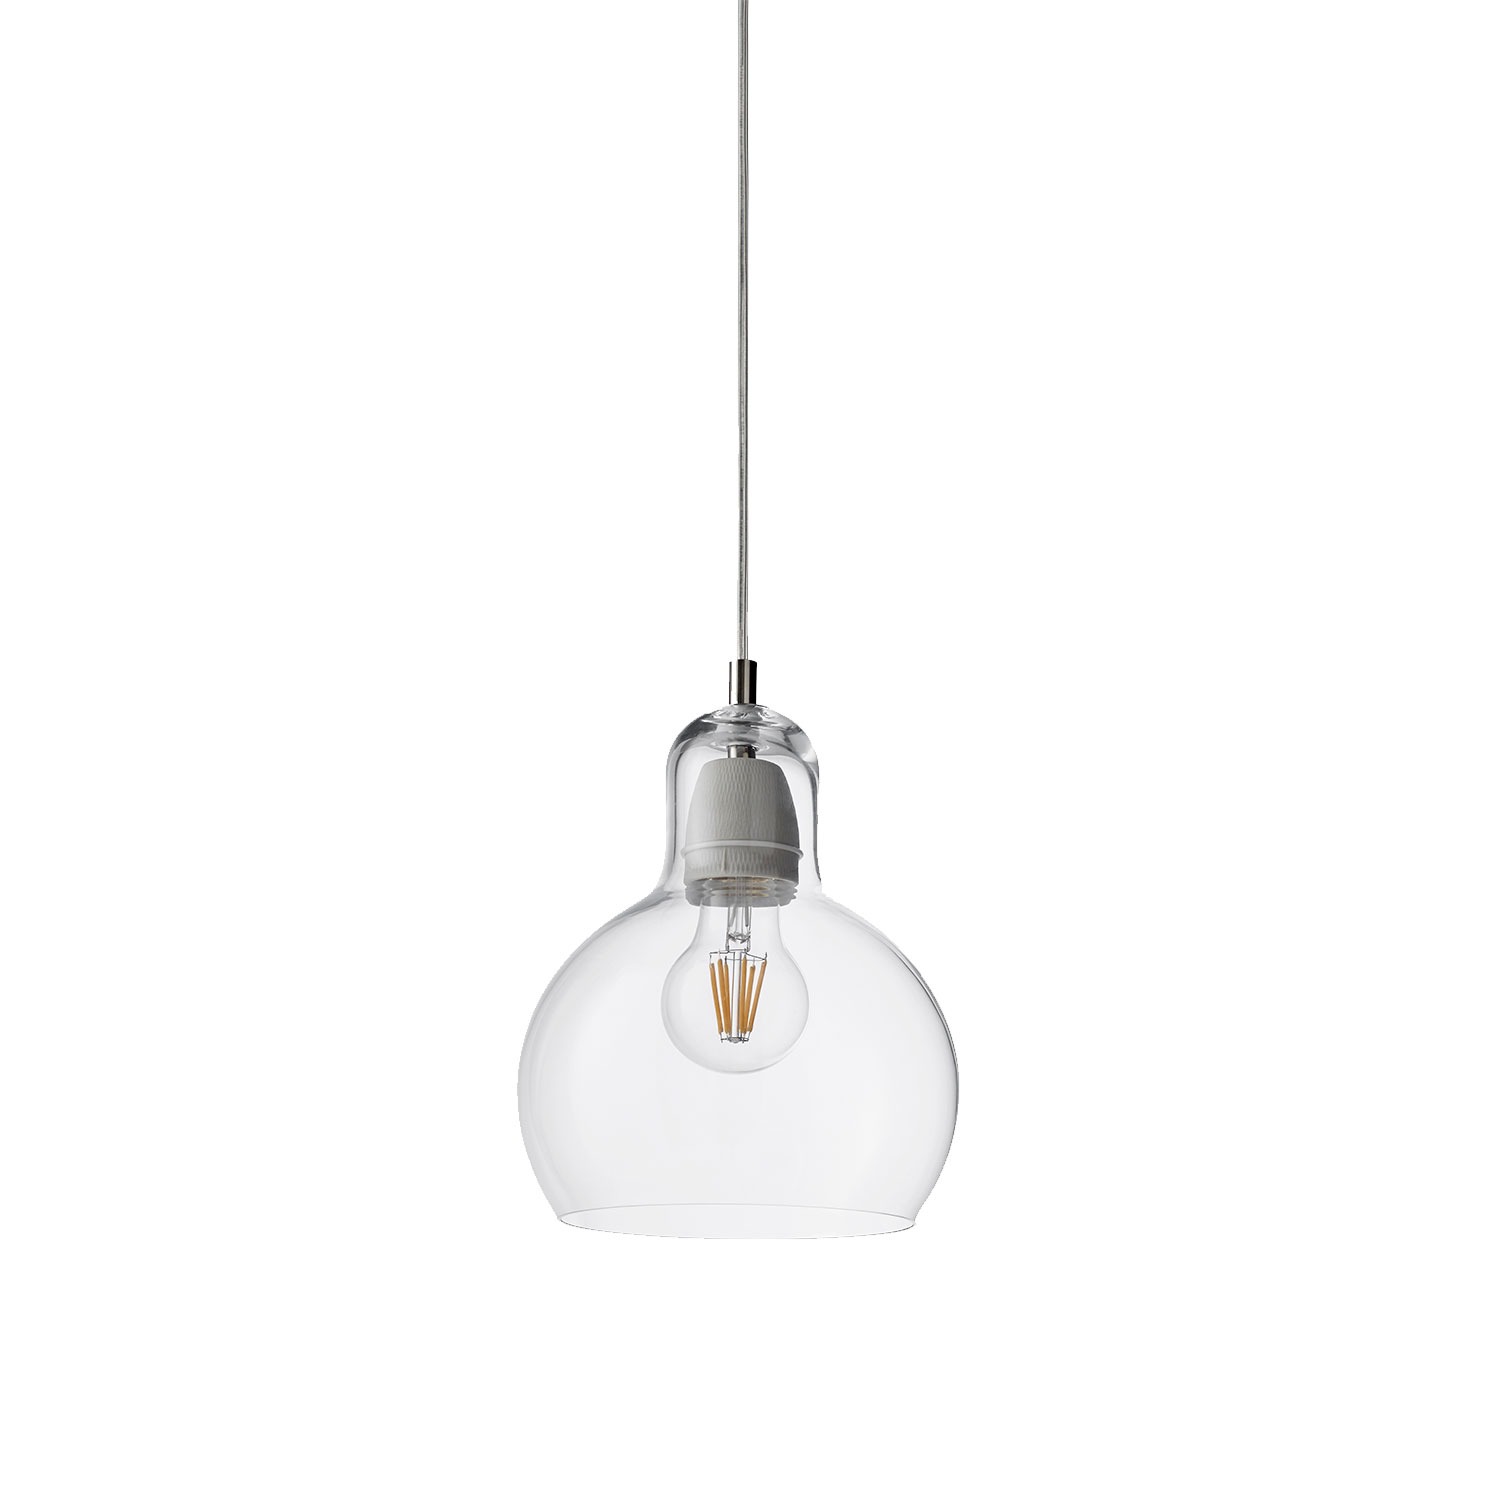 Bilde av &Tradition-Mega Bulb Transparent Glass Sr2, Transparent Ledning